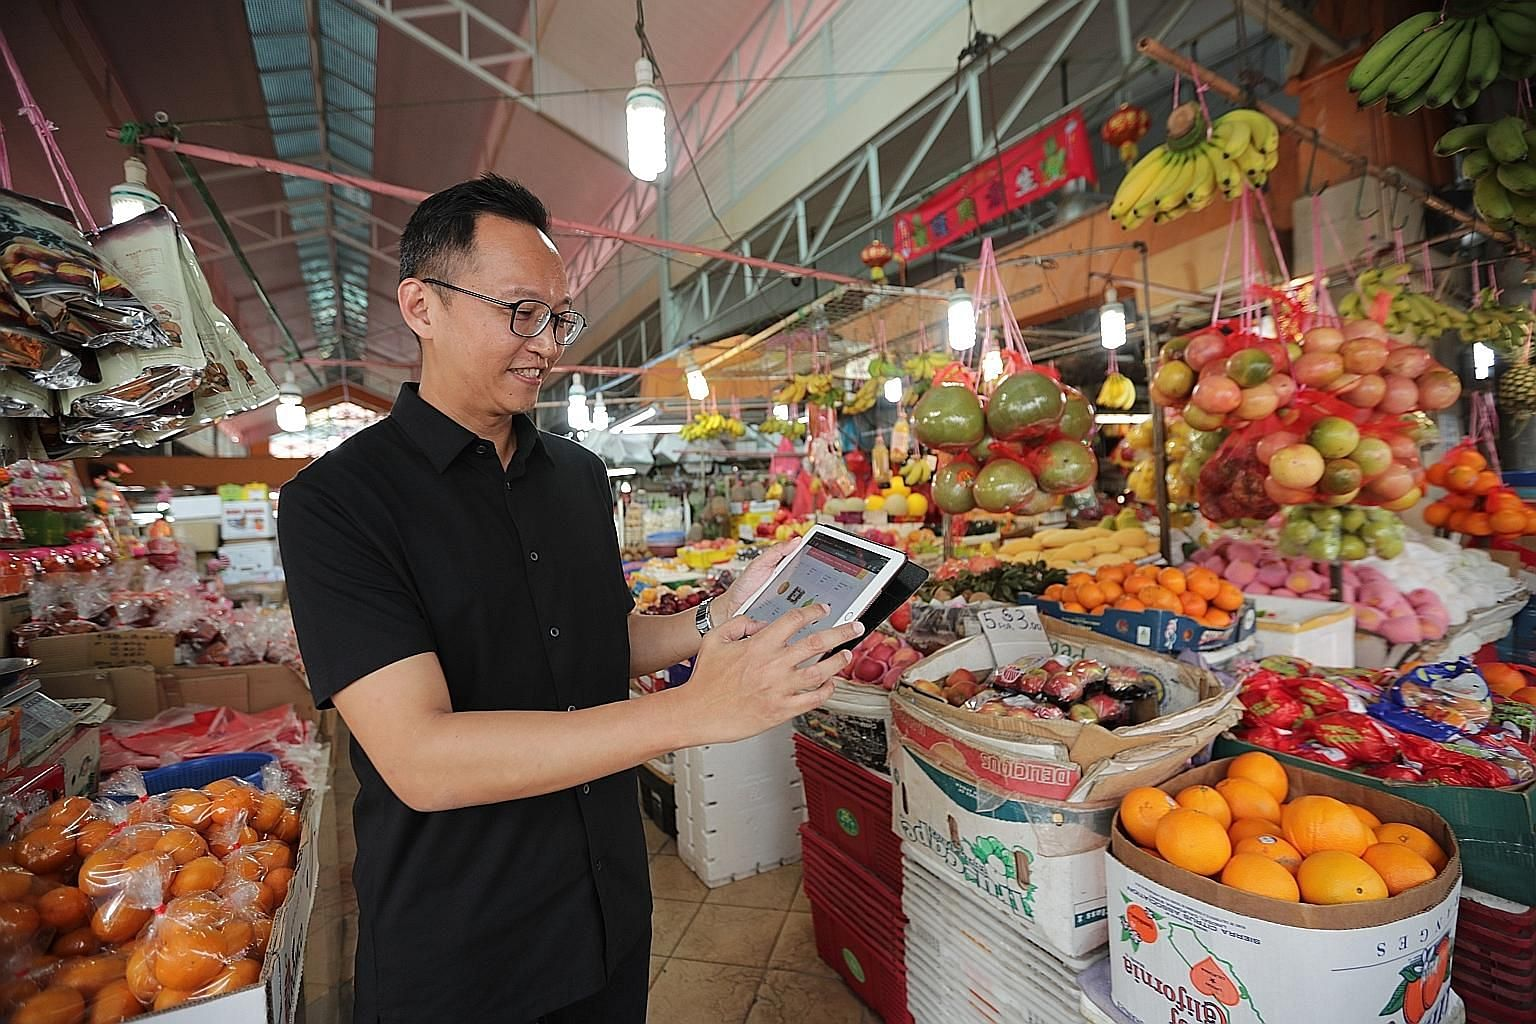 Mr Jon Lee of Chong Pang City Merchant and Hawker's Association browsing on the e-marketplace at Chong Pang market. Launched last June, the platform now has 29 retailers across trades such as selling fruit and vegetables.